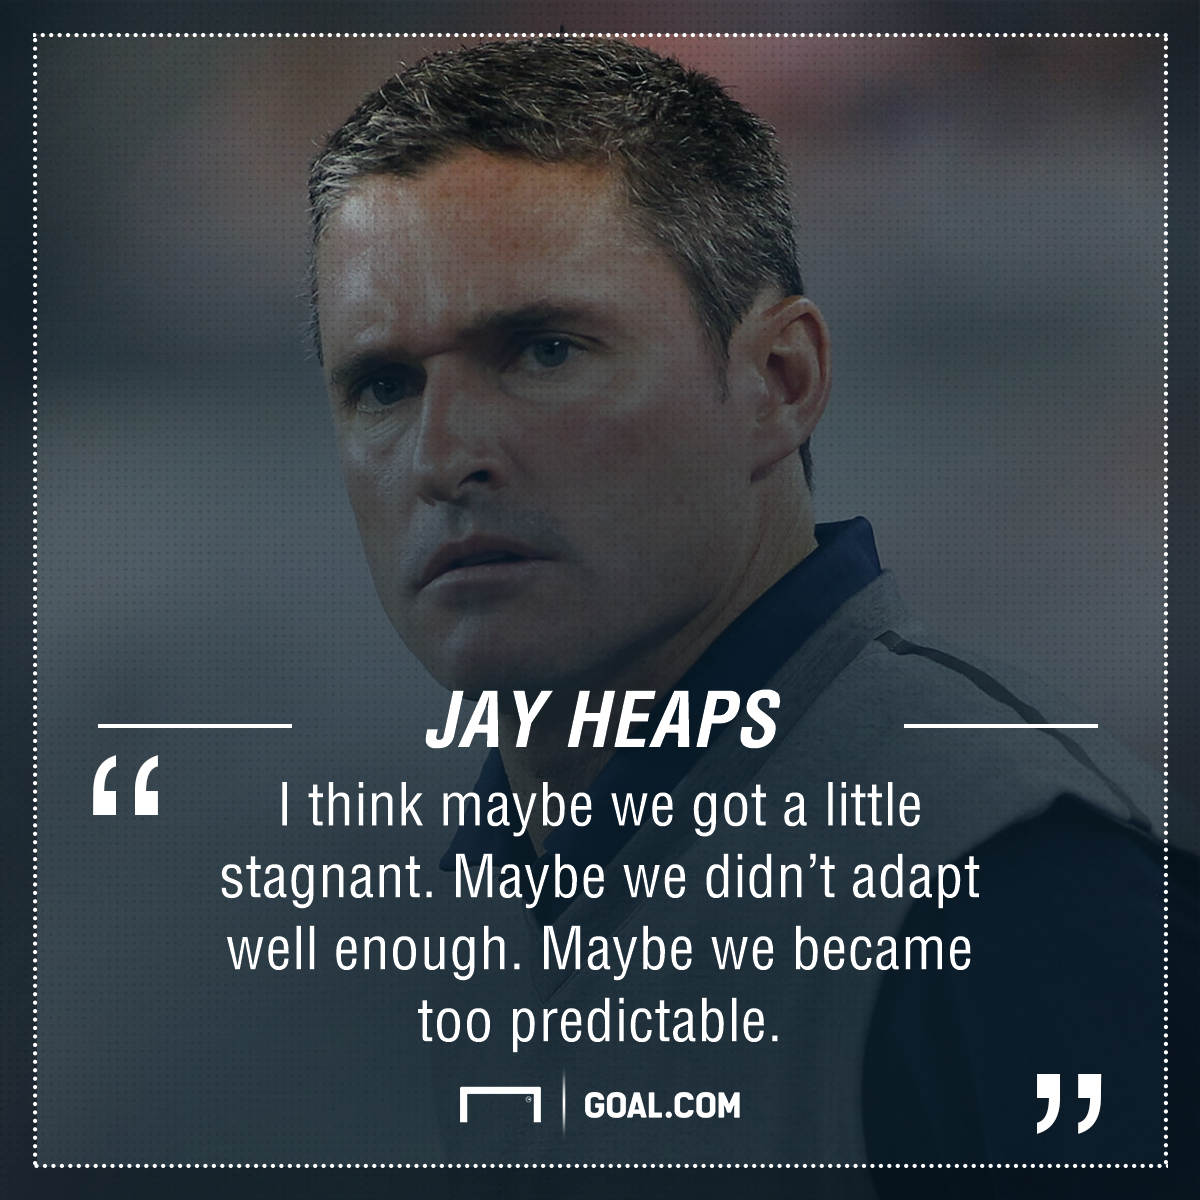 Jay Heaps playing surface